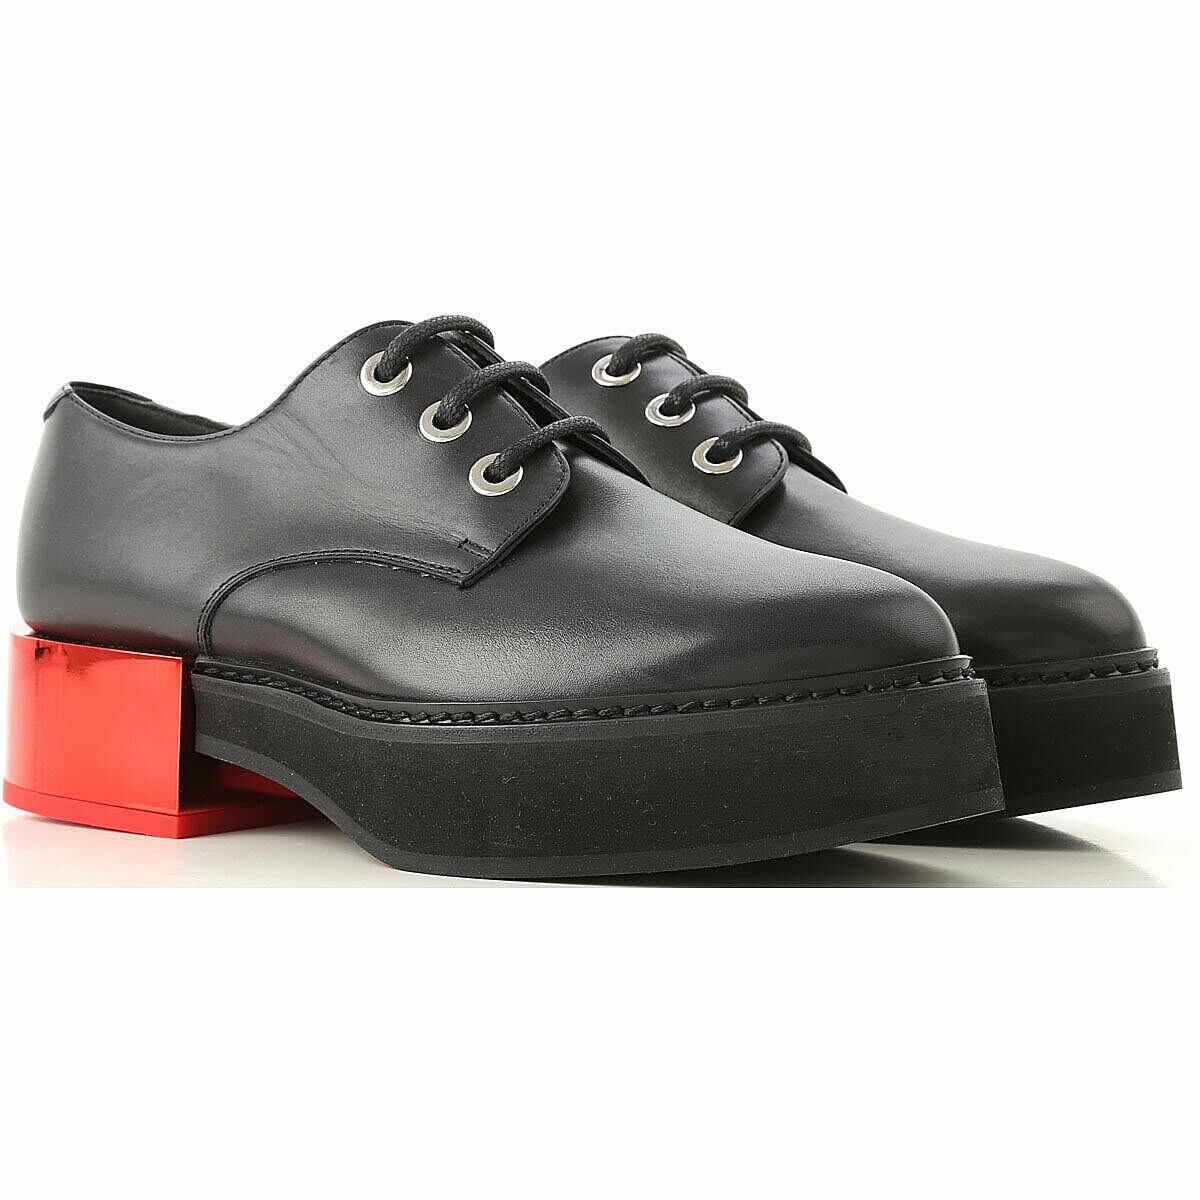 Oxford Shoes Inspiration Look Styles